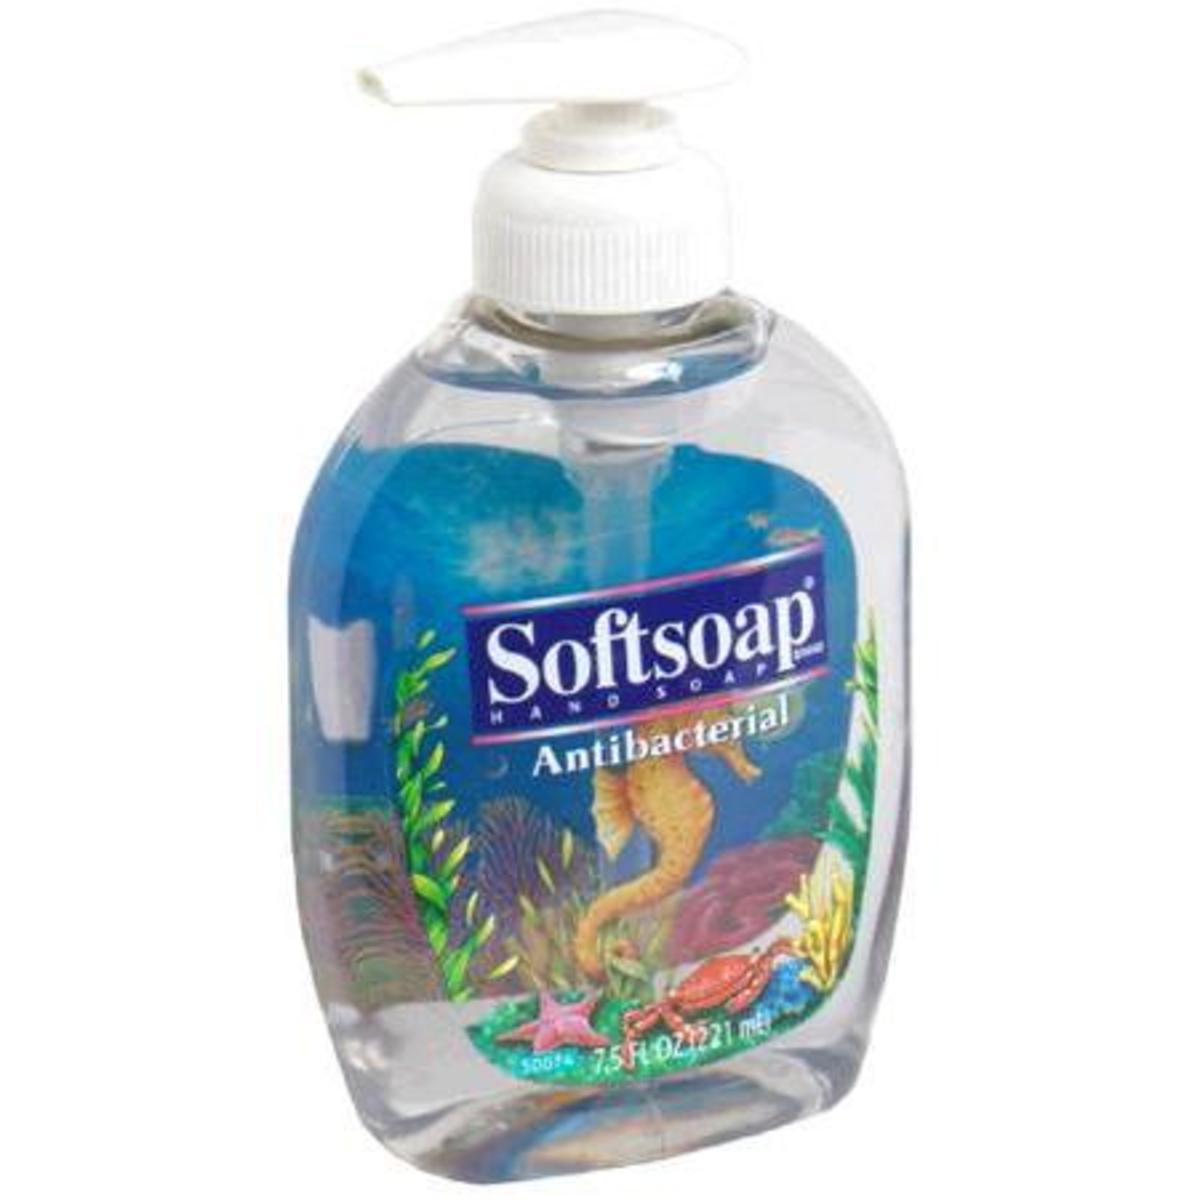 Softsoap Unscented Antibacterial Soap